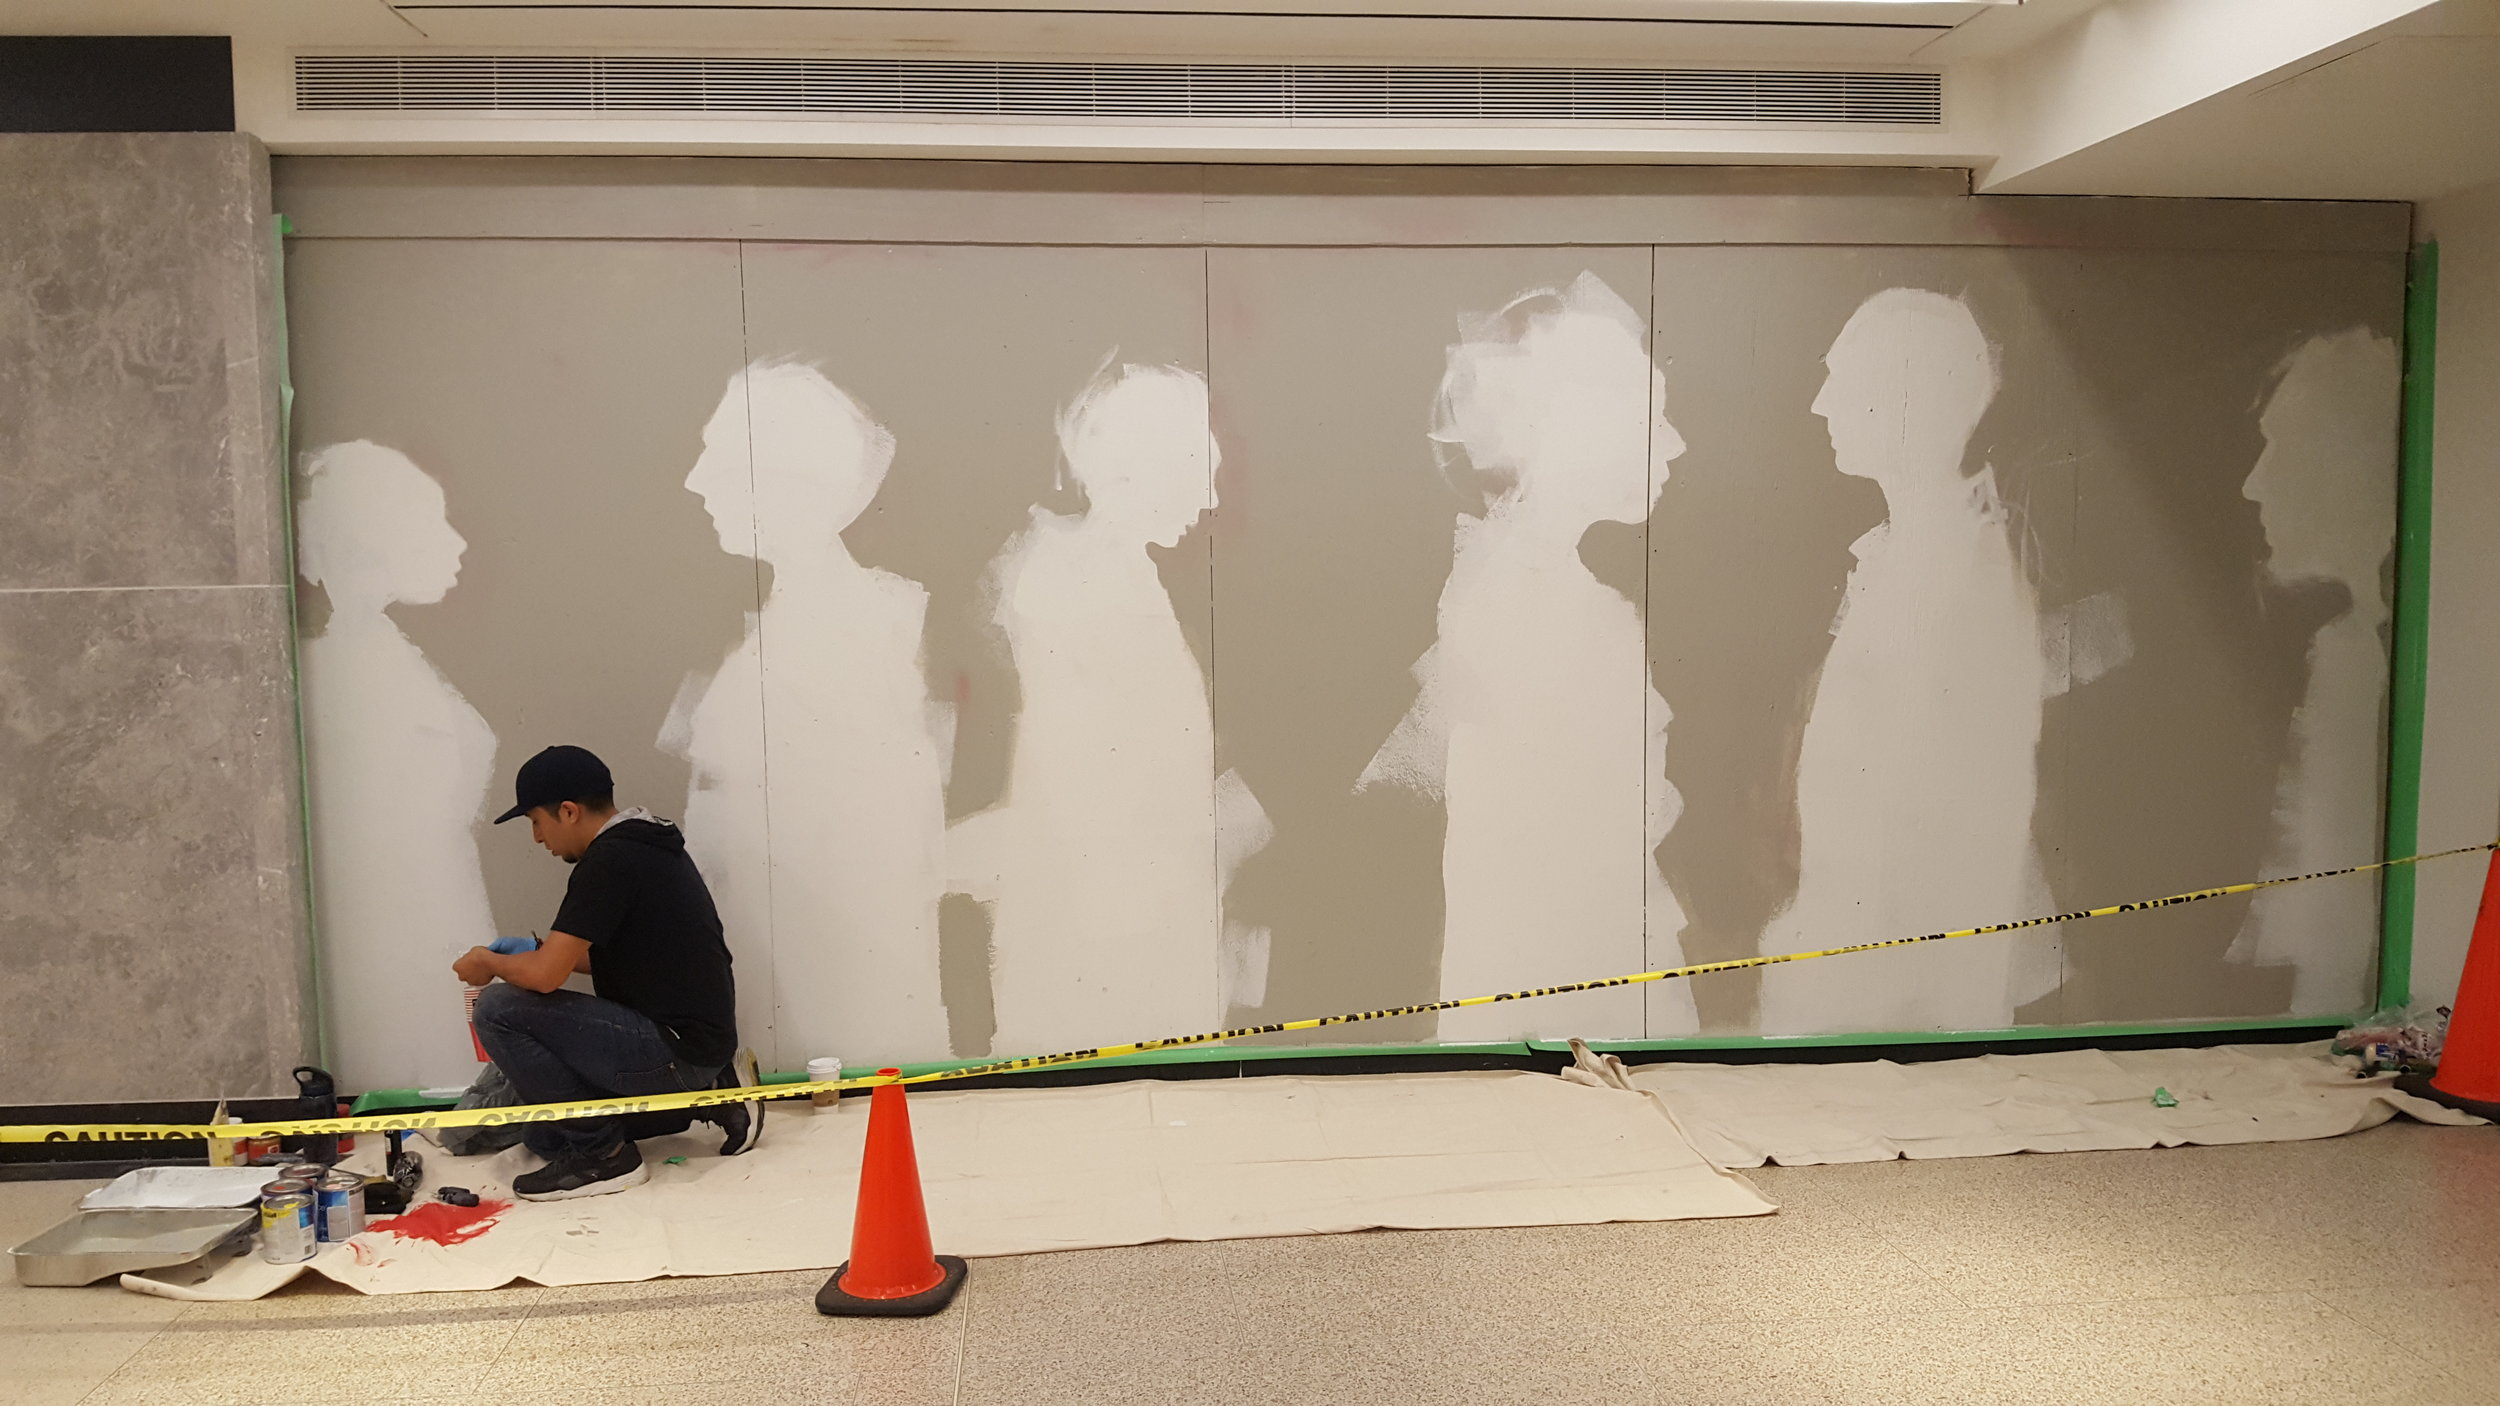 Culture Days live mural painting at Union Station, Toronto by visual artist Carlos Delgado